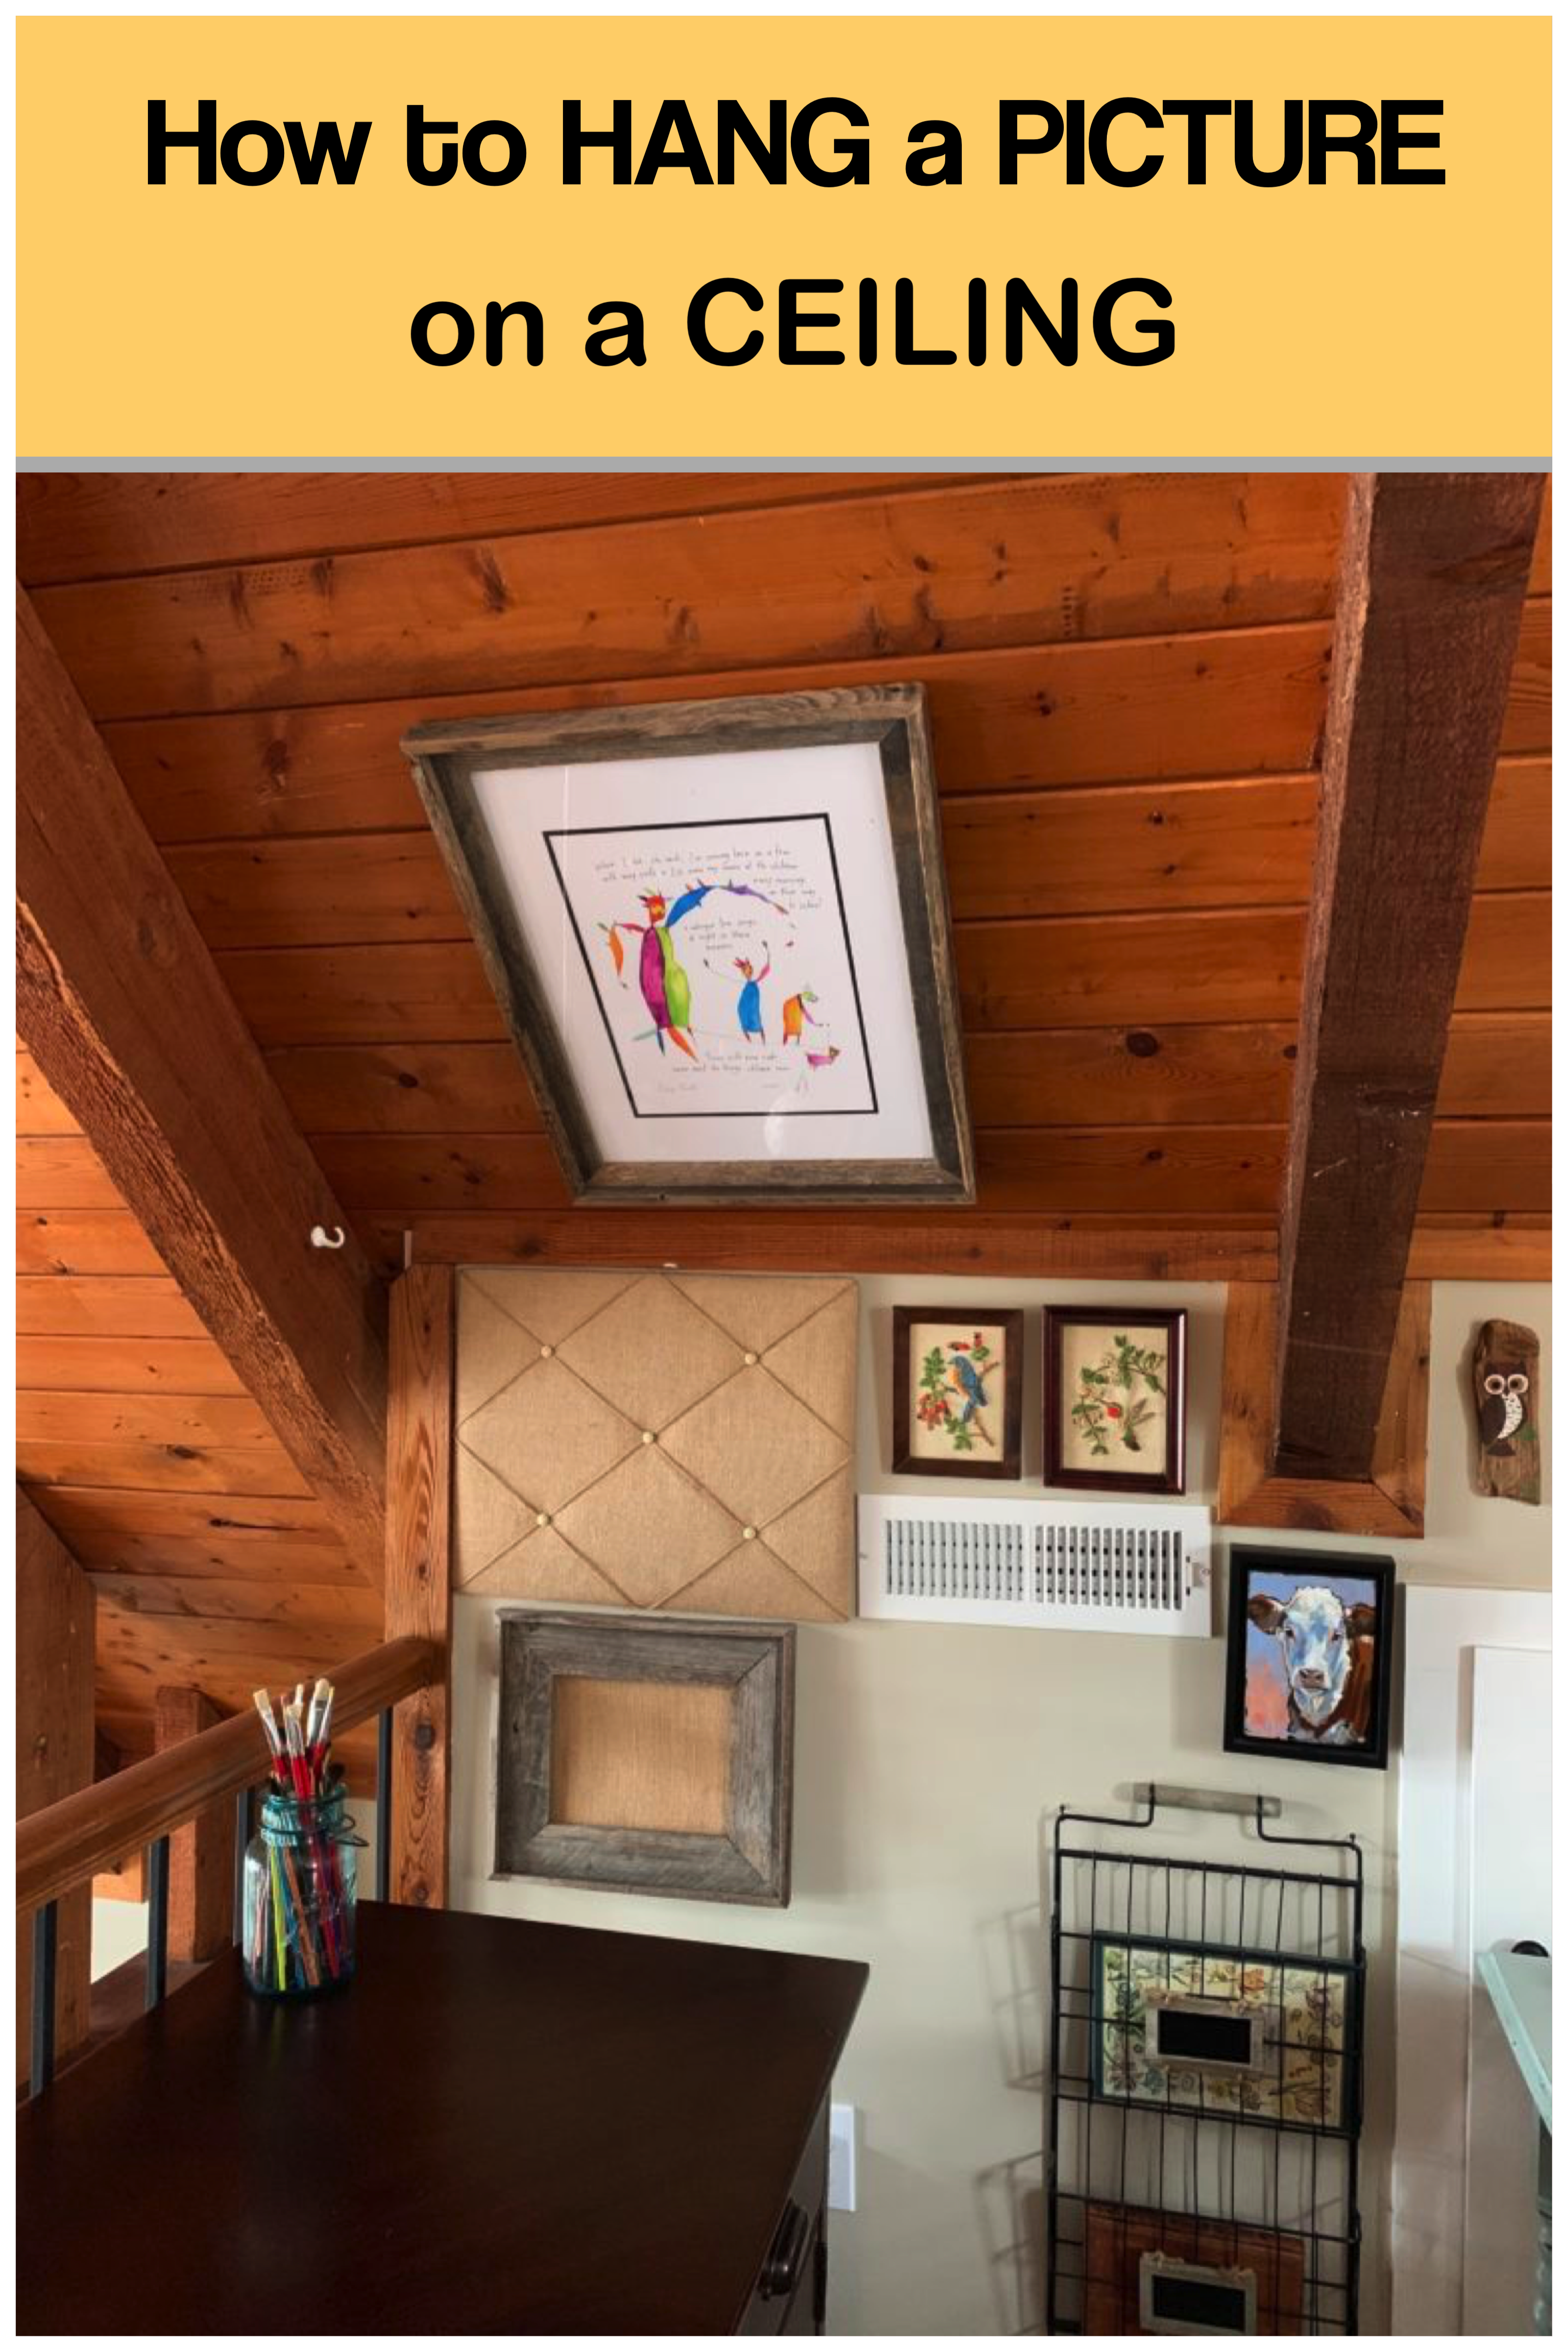 How To Hang A Picture On A Ceiling Hanging Pictures Hanging Cool Inventions